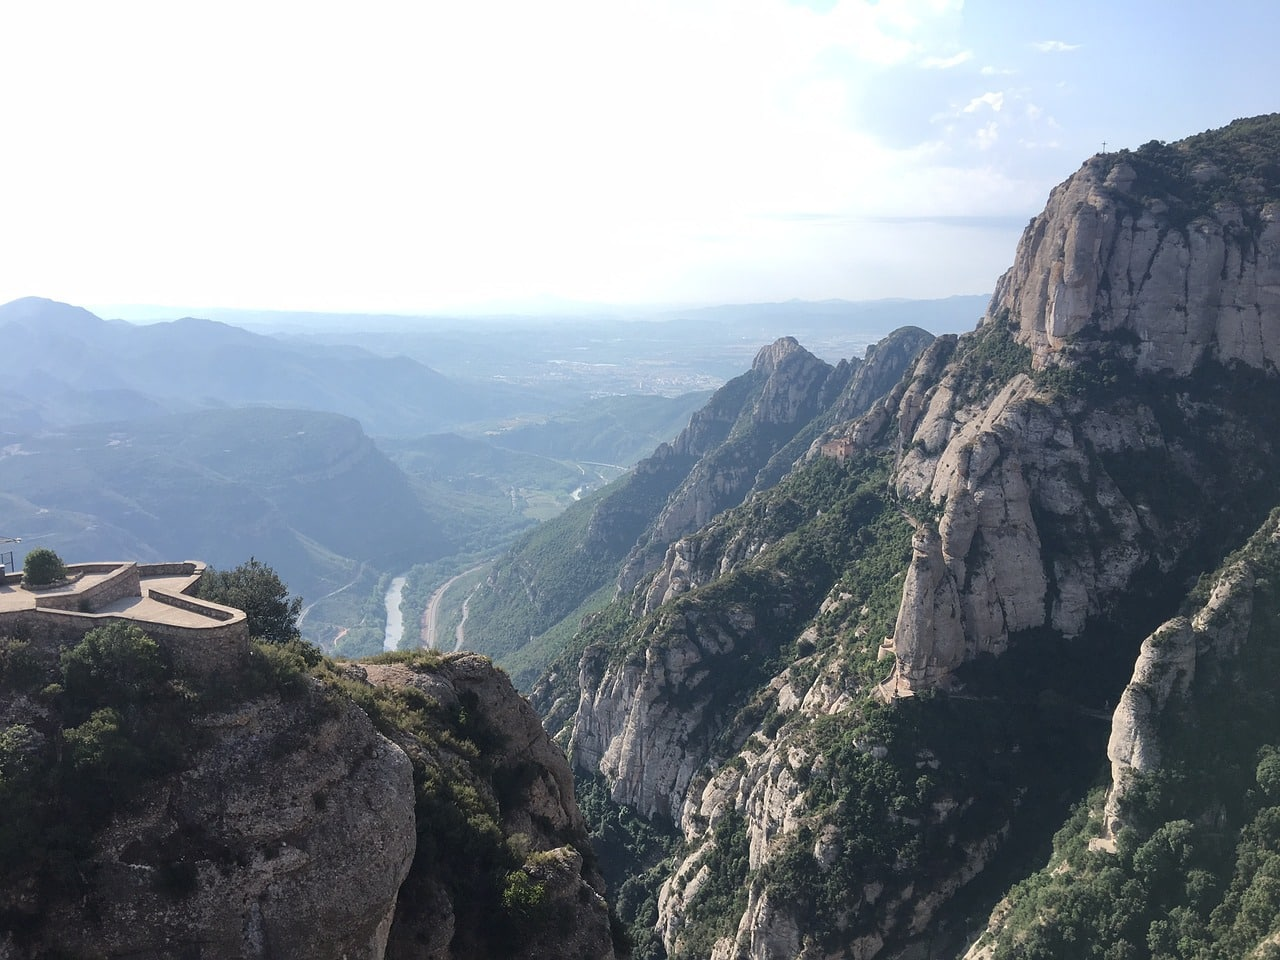 View from Apostles Lookout point in Montserrat